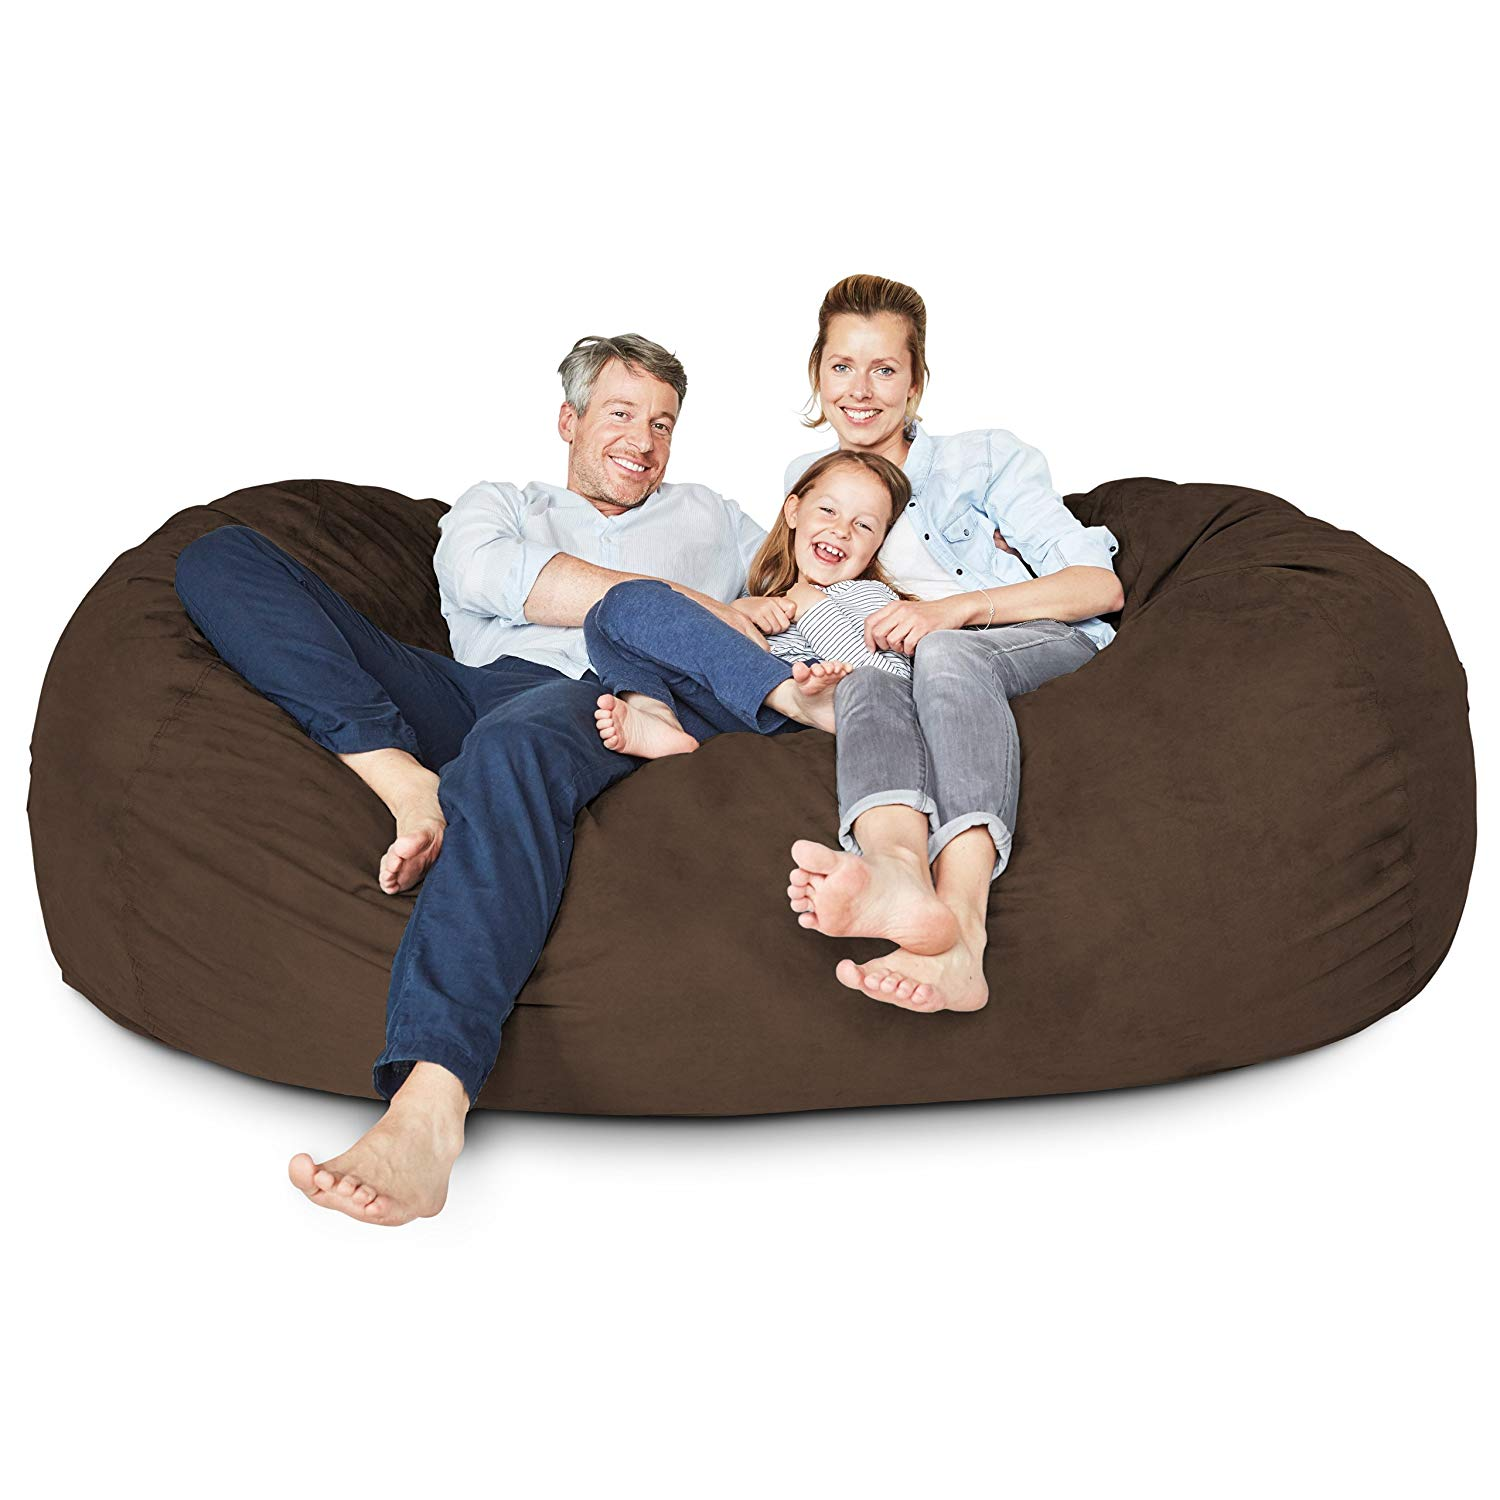 Lumaland Luxury 7 Foot Bean Bag